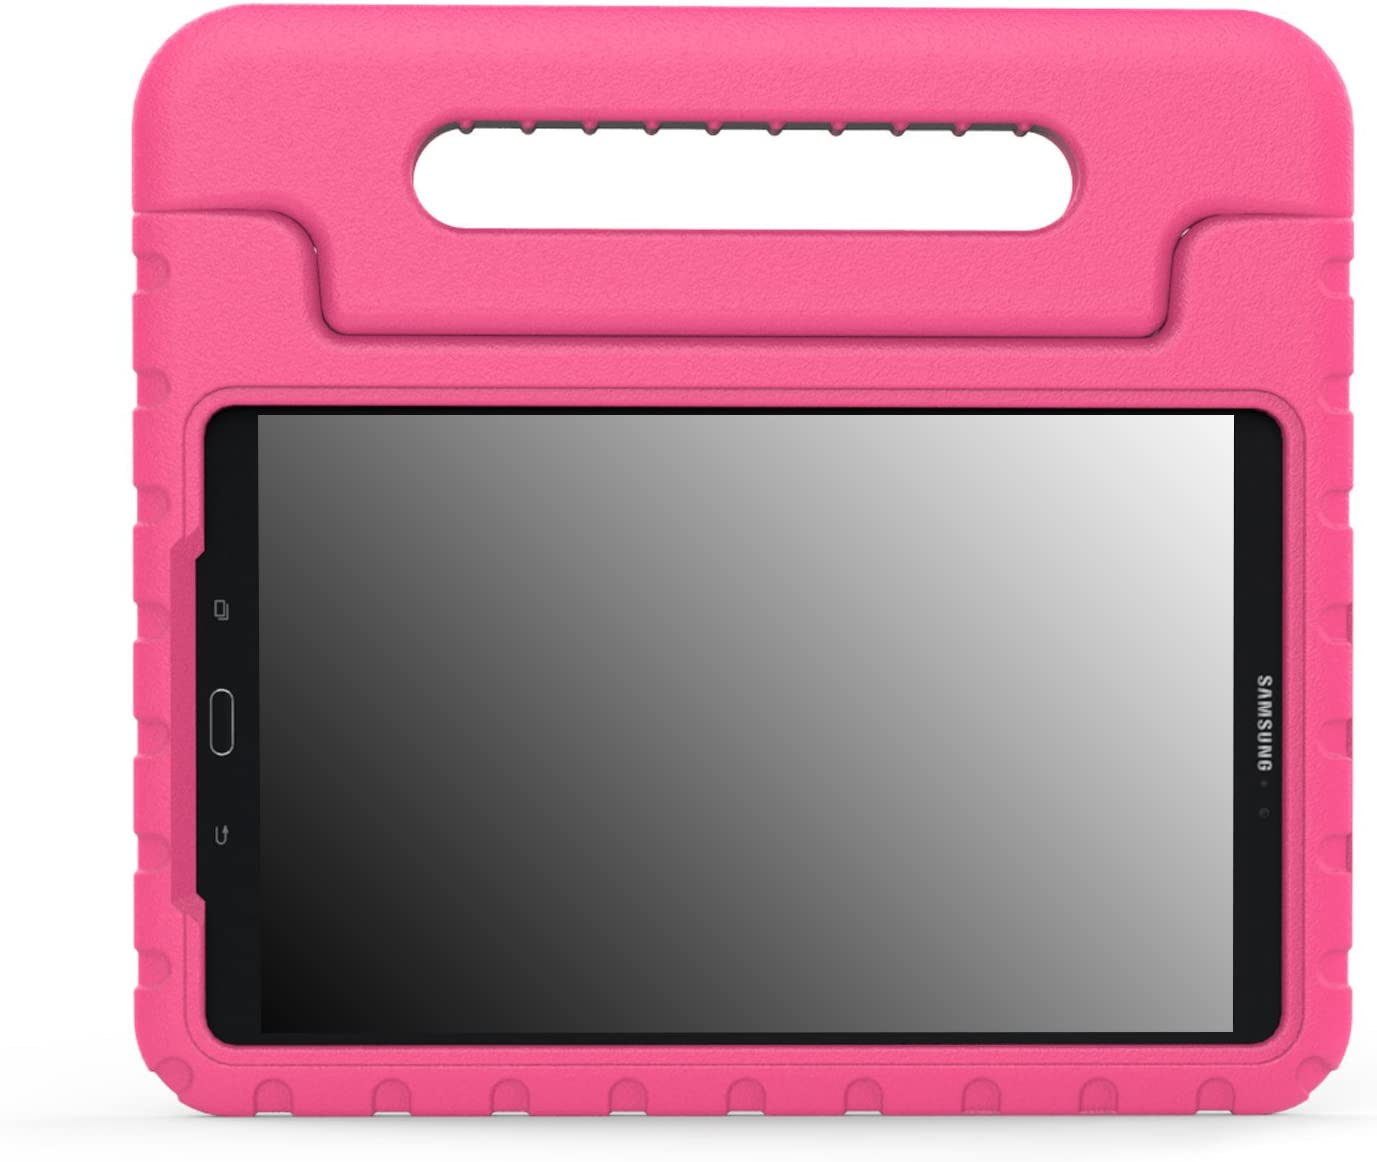 """MoKo Case Fit Galaxy Tab A 10.1 2016, Kids Shock Proof Convertible Handle Lightweight Super Protective Stand Cover for Samsung Galaxy Tab A 10.1"""" 2016 Tablet(SM-T580/SM-T585, No Pen Version), Magenta"""